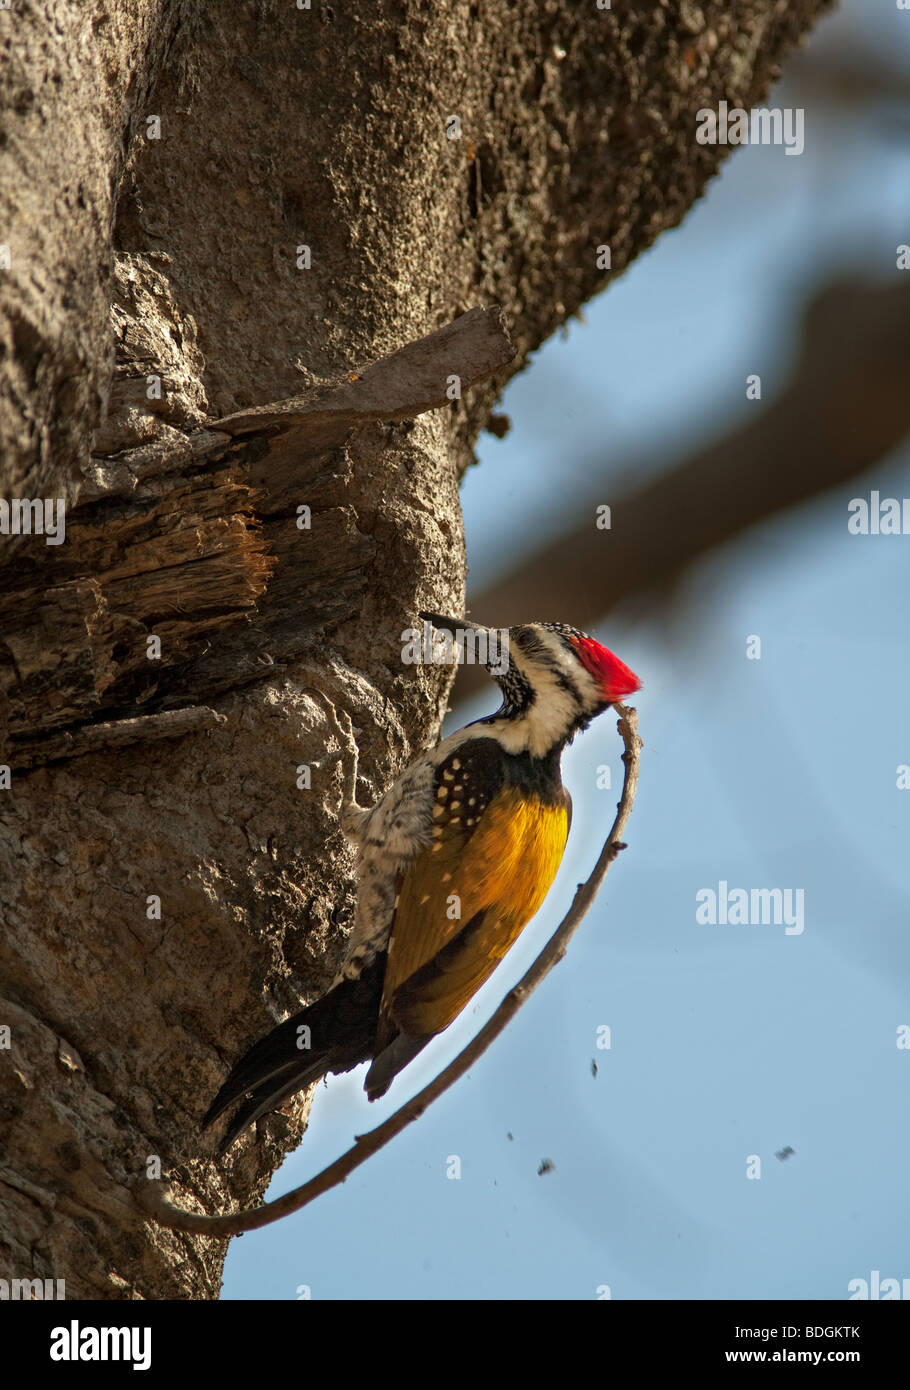 A Woodpecker peaking the tree at Pench Tiger Reserve, Madhya pradesh India. - Stock Image